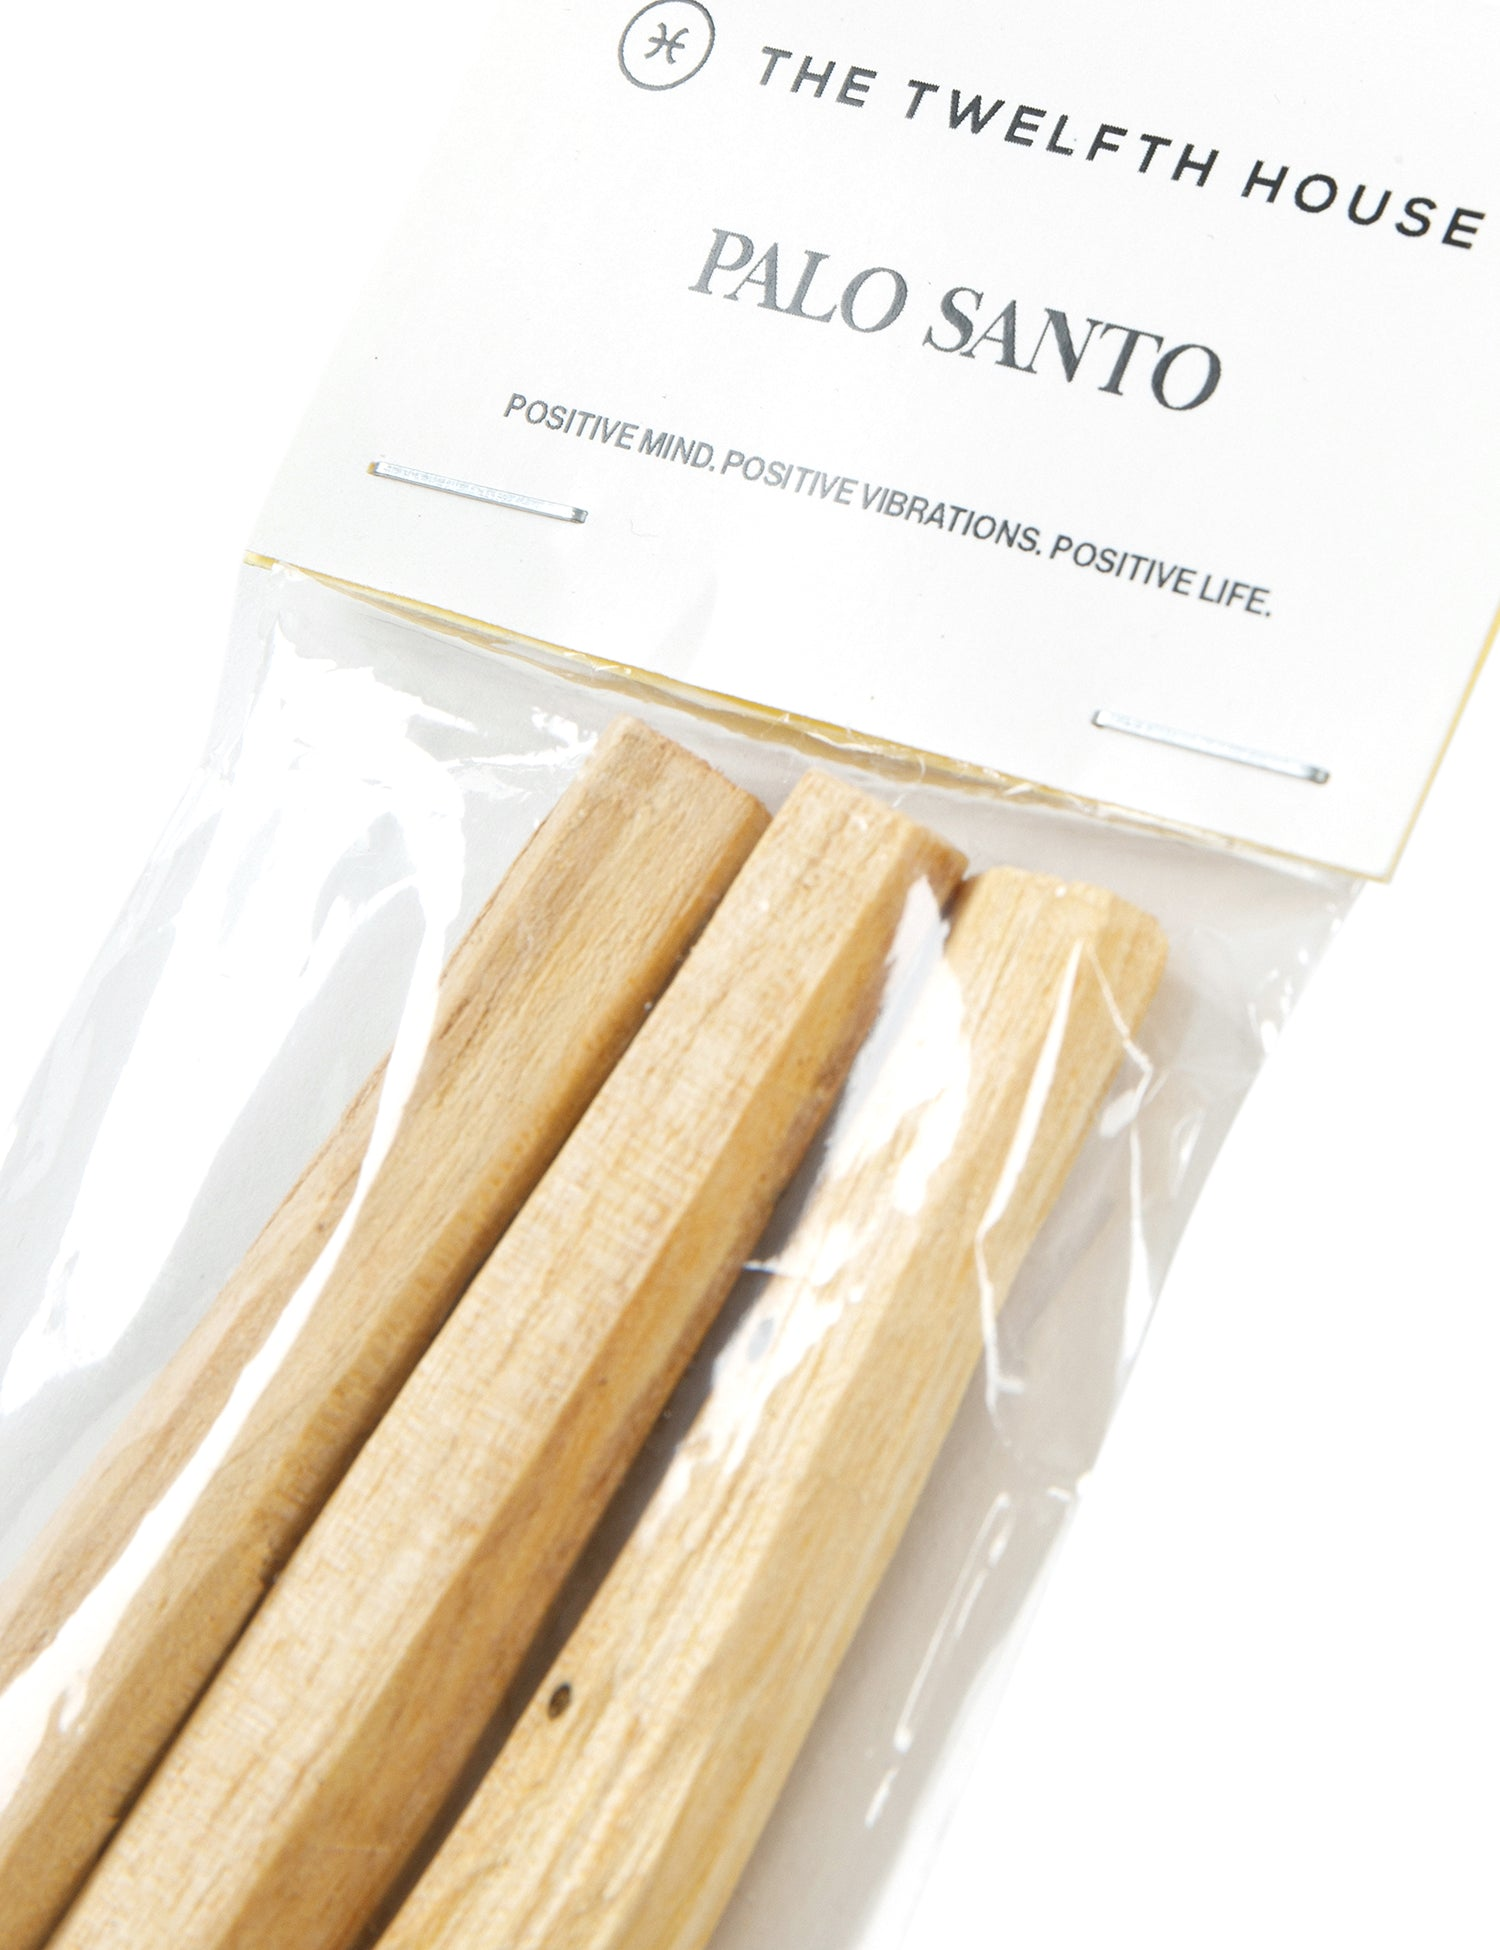 products/tth_2021_home-palosanto_02.jpg